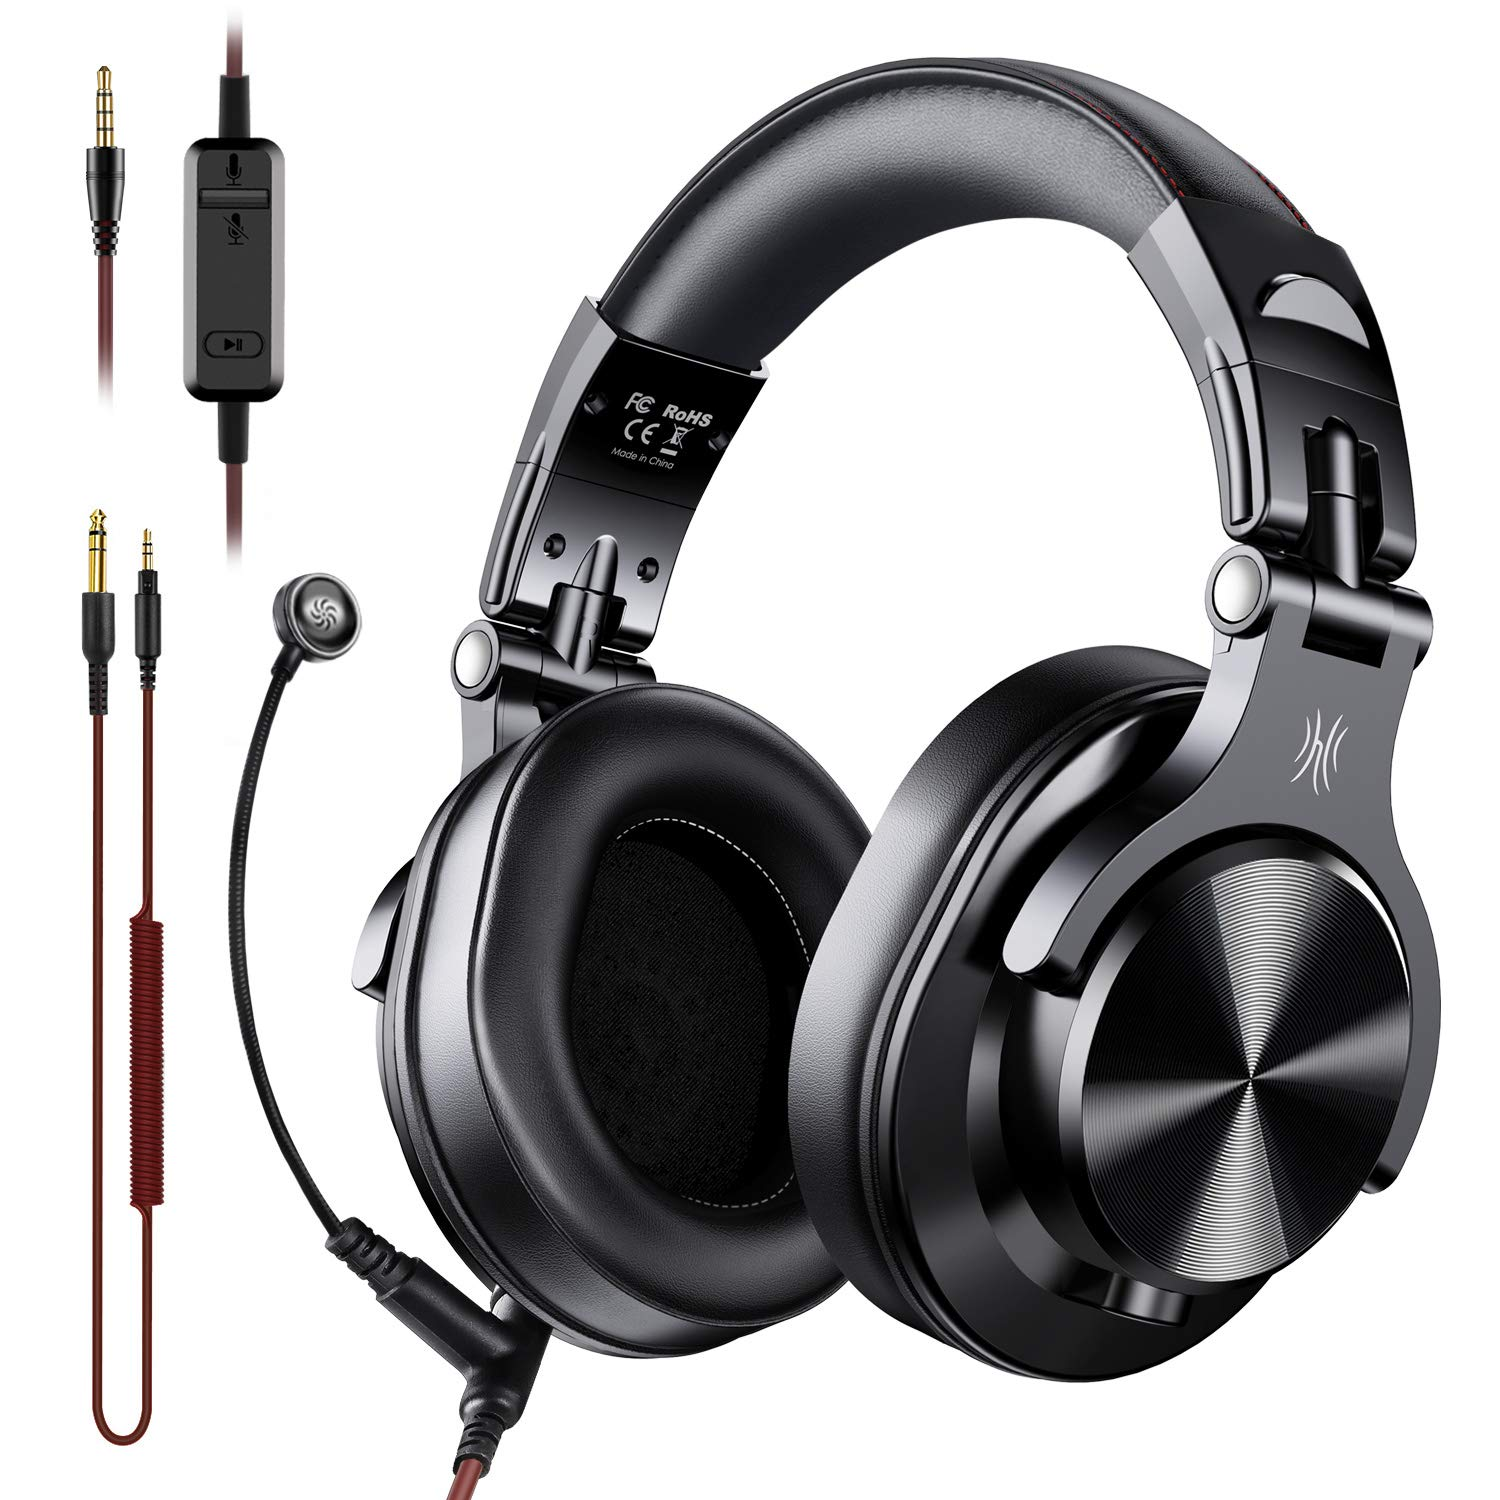 Amazon Com Oneodio A71 Over Ear Headsets With Boom Mic Ps4 Xbox One Pc Laptop Wired Stereo Headphones With On Line Volume Share Port Headsets For Gaming Office Phone Call Dj Electronics